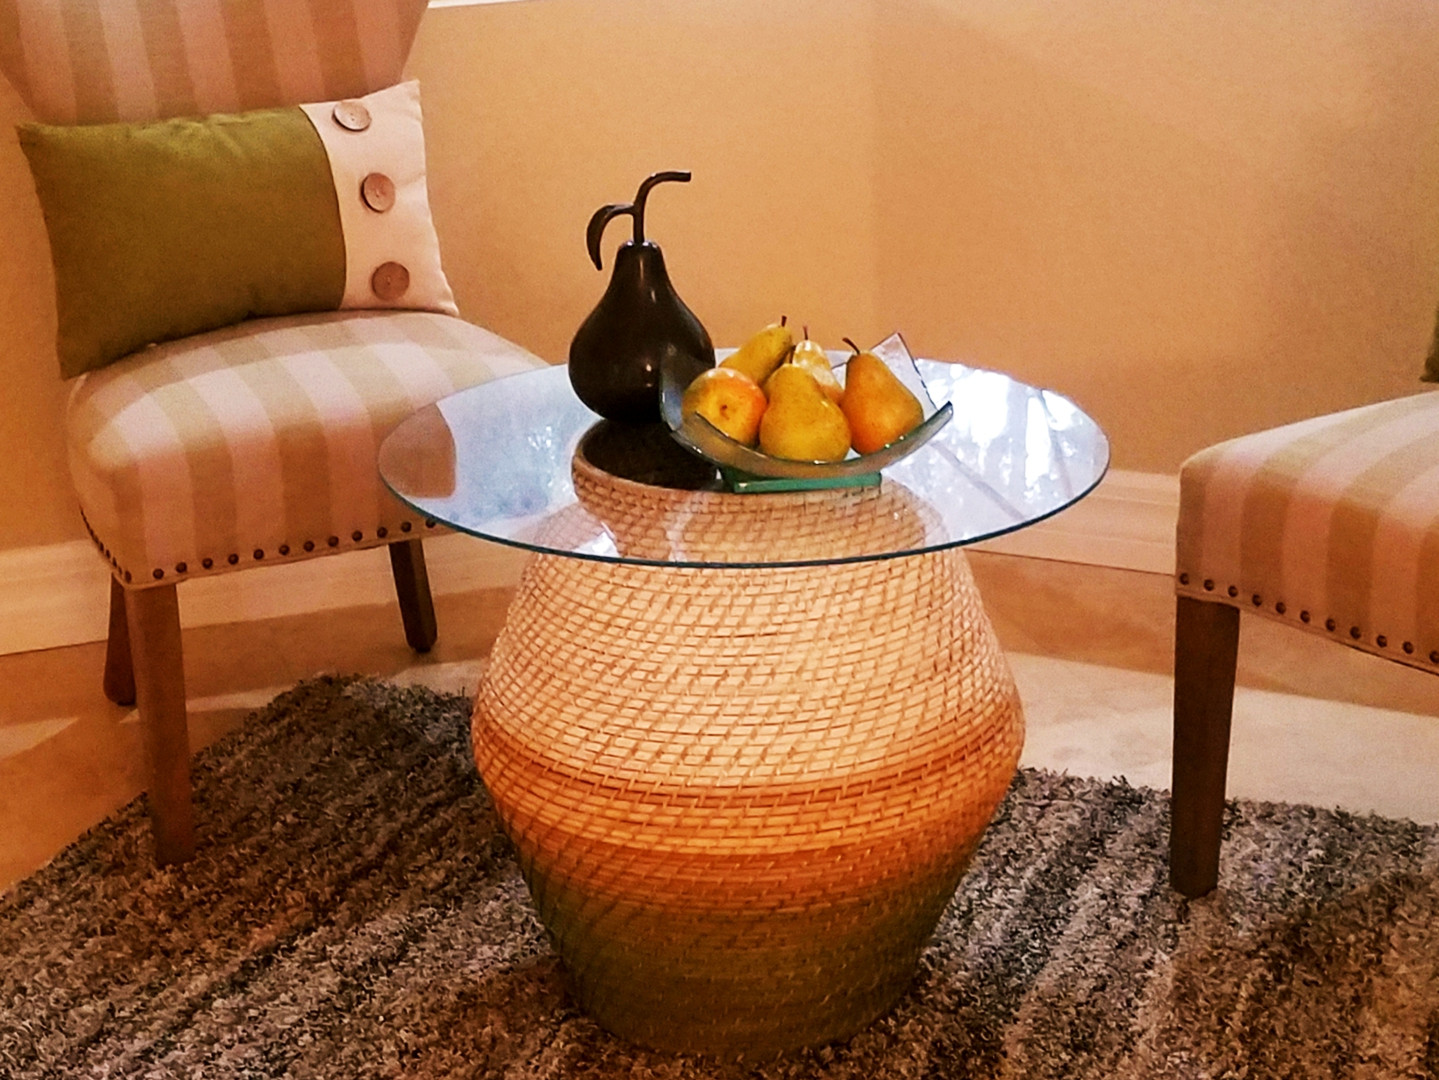 Basket table with pears.jpg